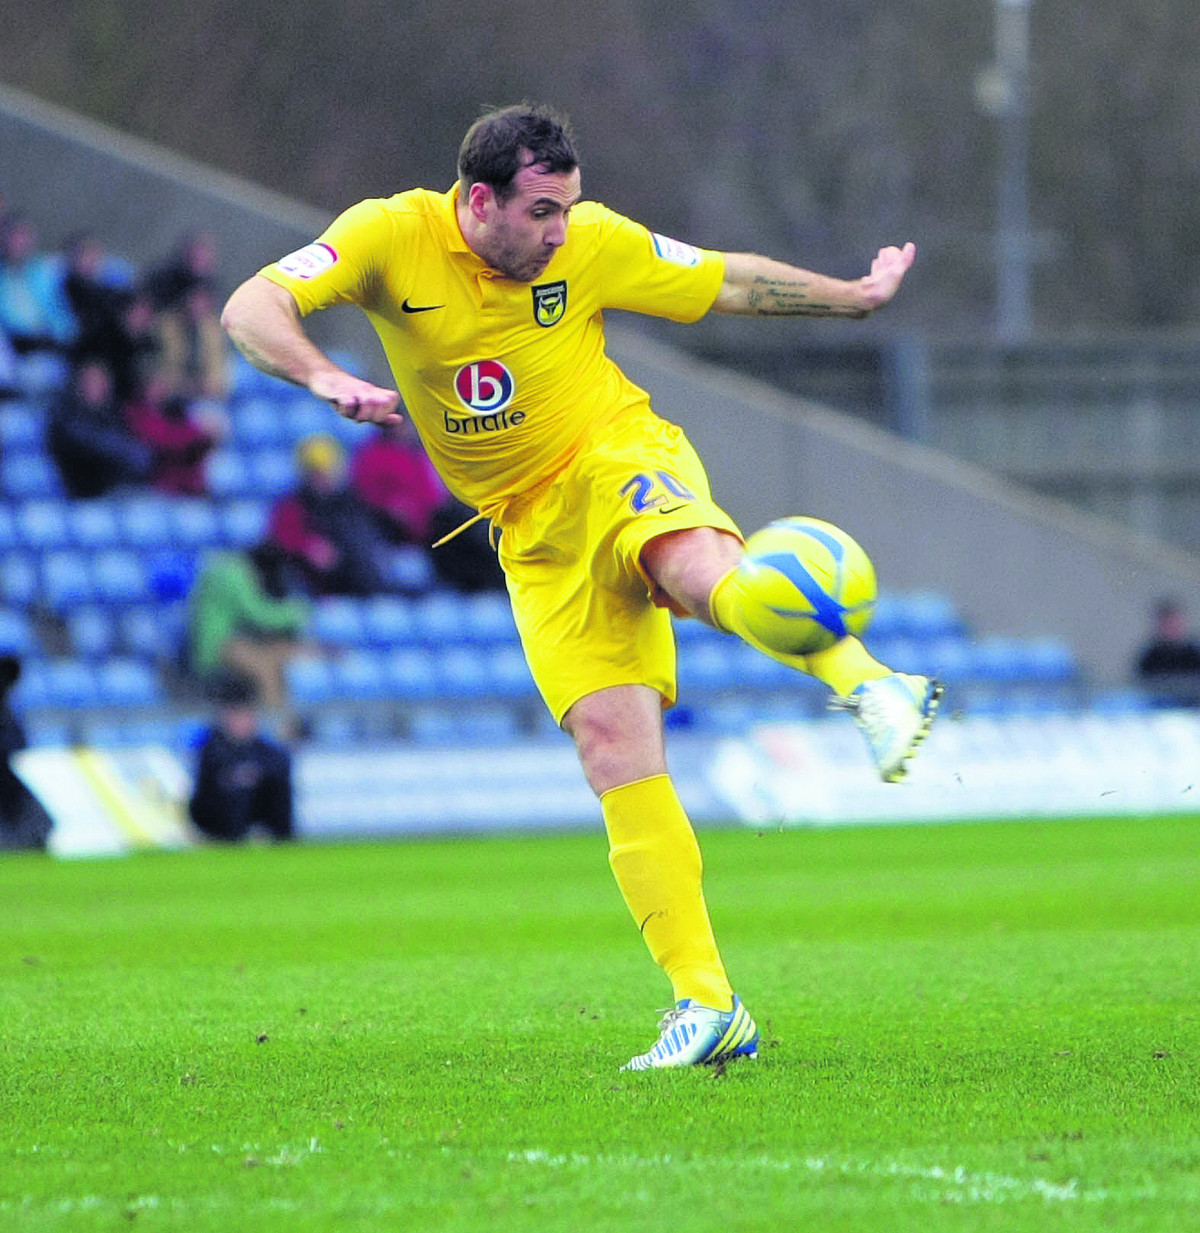 Former Oxford United man Peter Leven wants to resume his career after injury